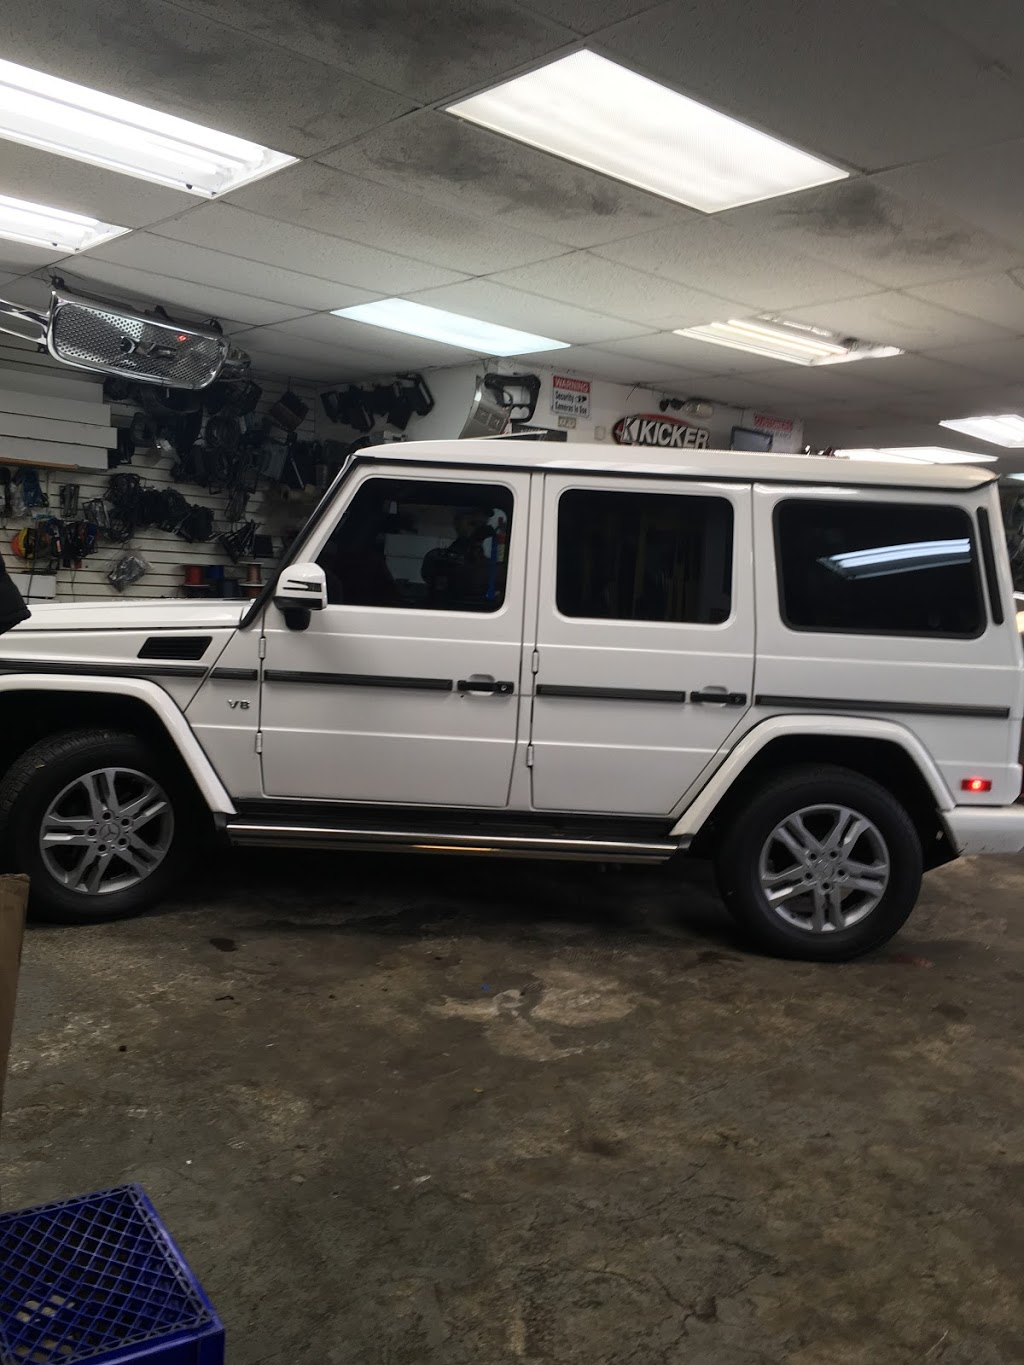 New Haven Auto Sports - car repair    Photo 10 of 10   Address: 155 Truman St, New Haven, CT 06519, USA   Phone: (203) 909-6444